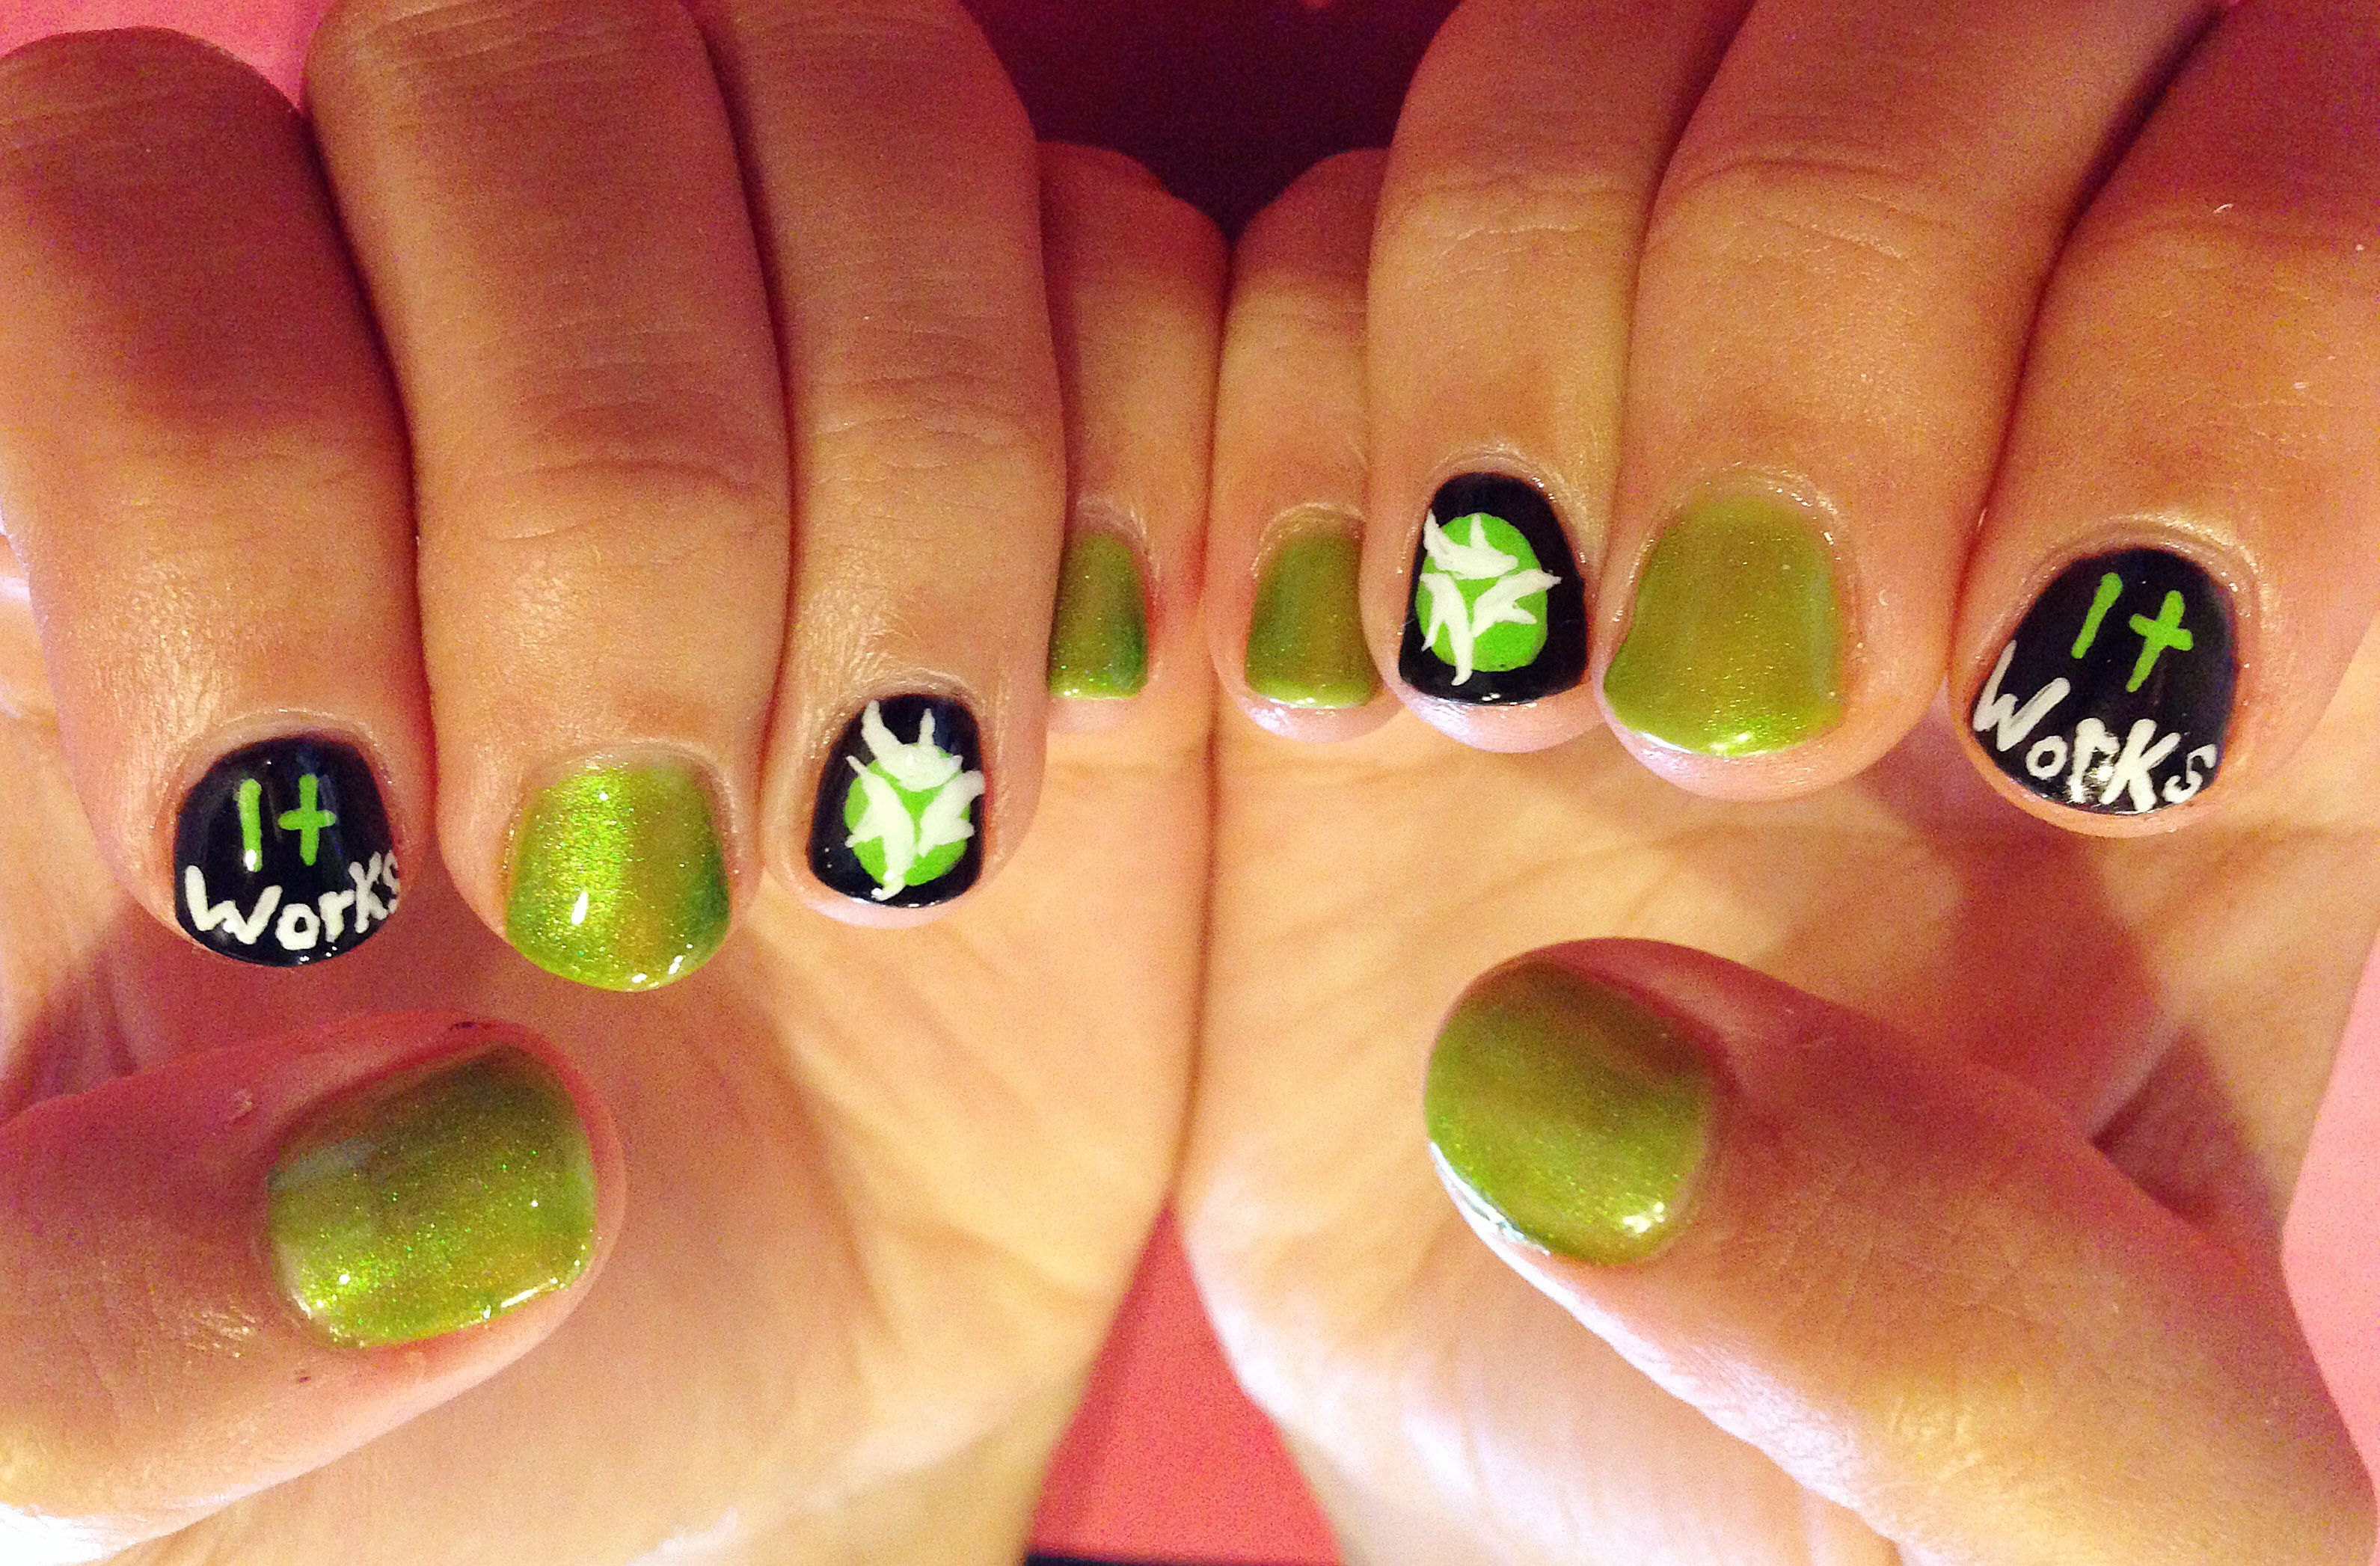 It works nail art, it works, it works nails | It Works Marketing ...